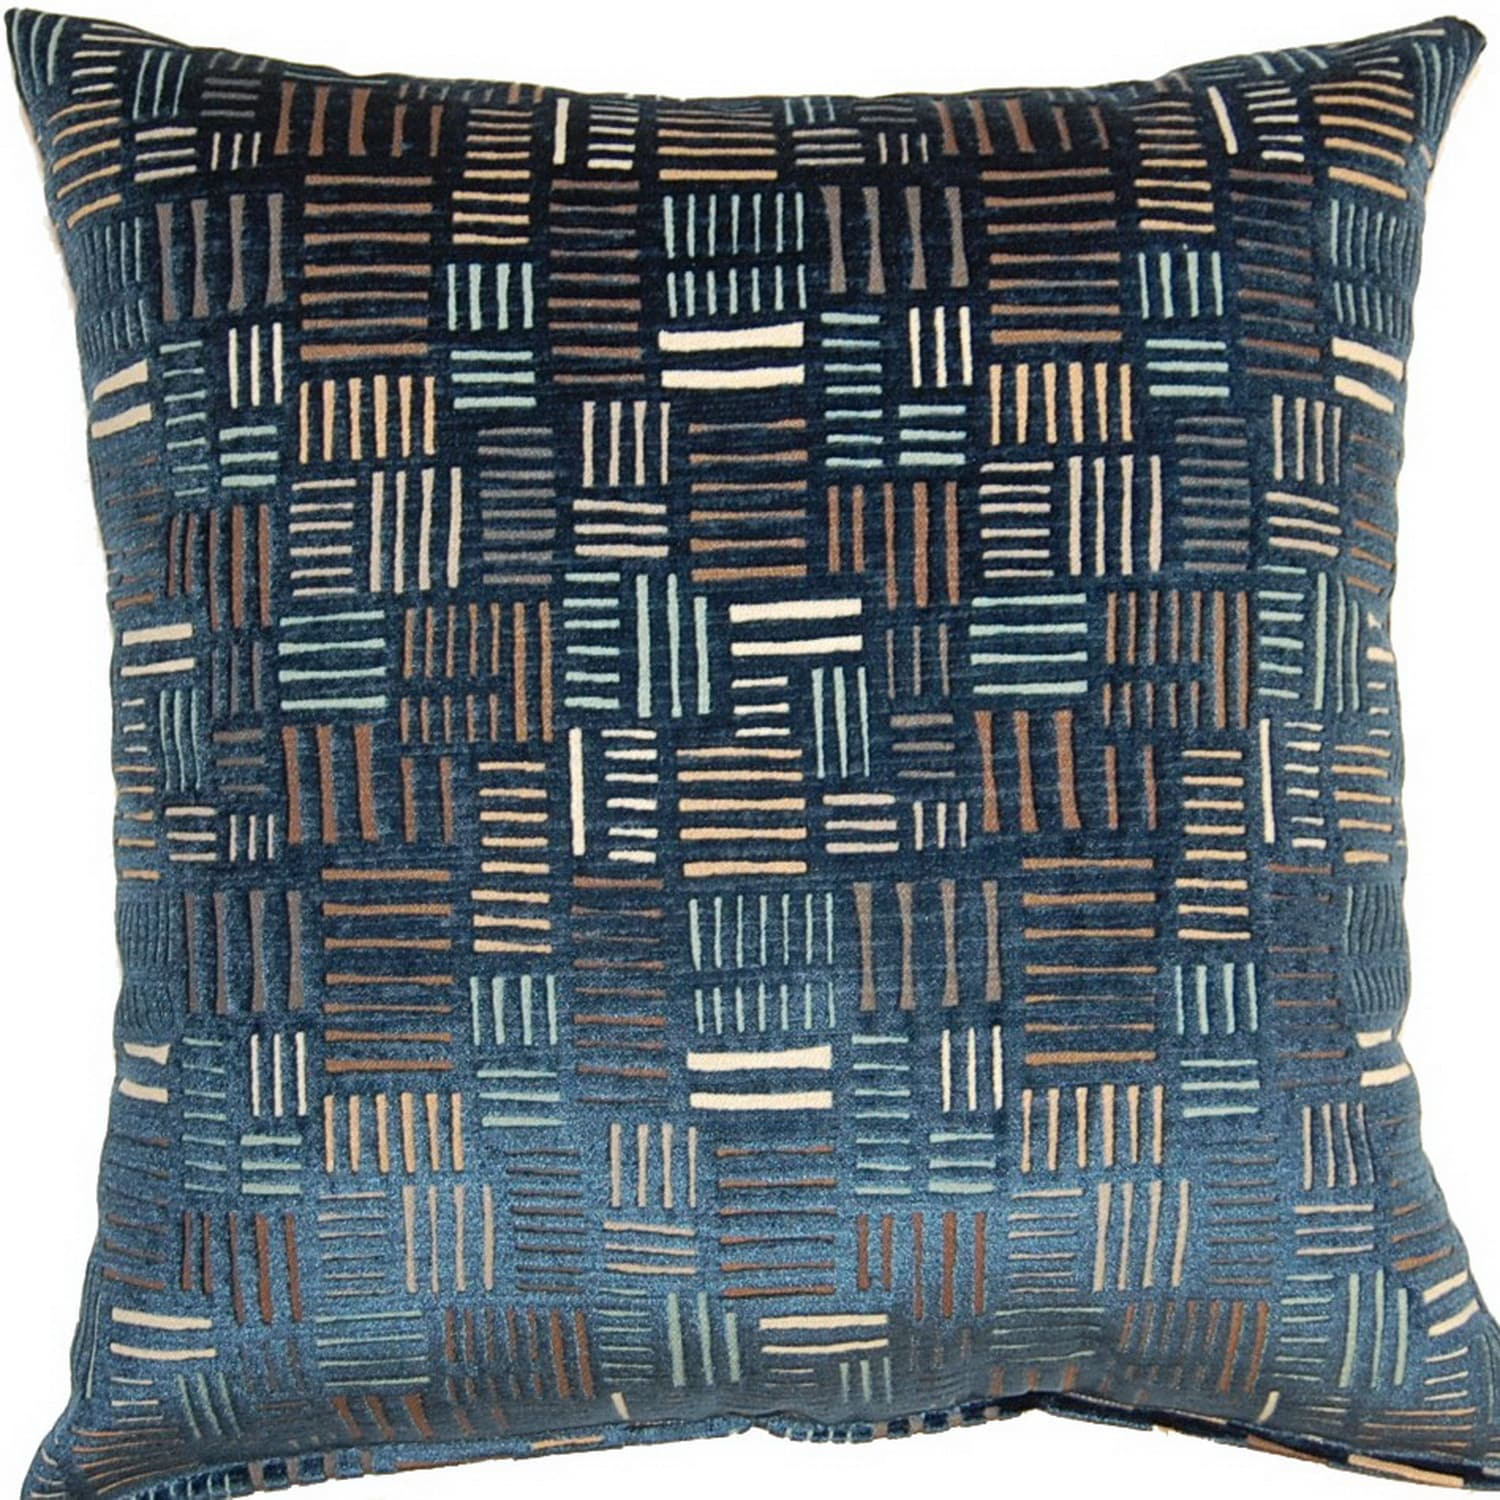 Fox Hill Trading Bleeker Navy 17-inch Throw Pillows (Set of 2)